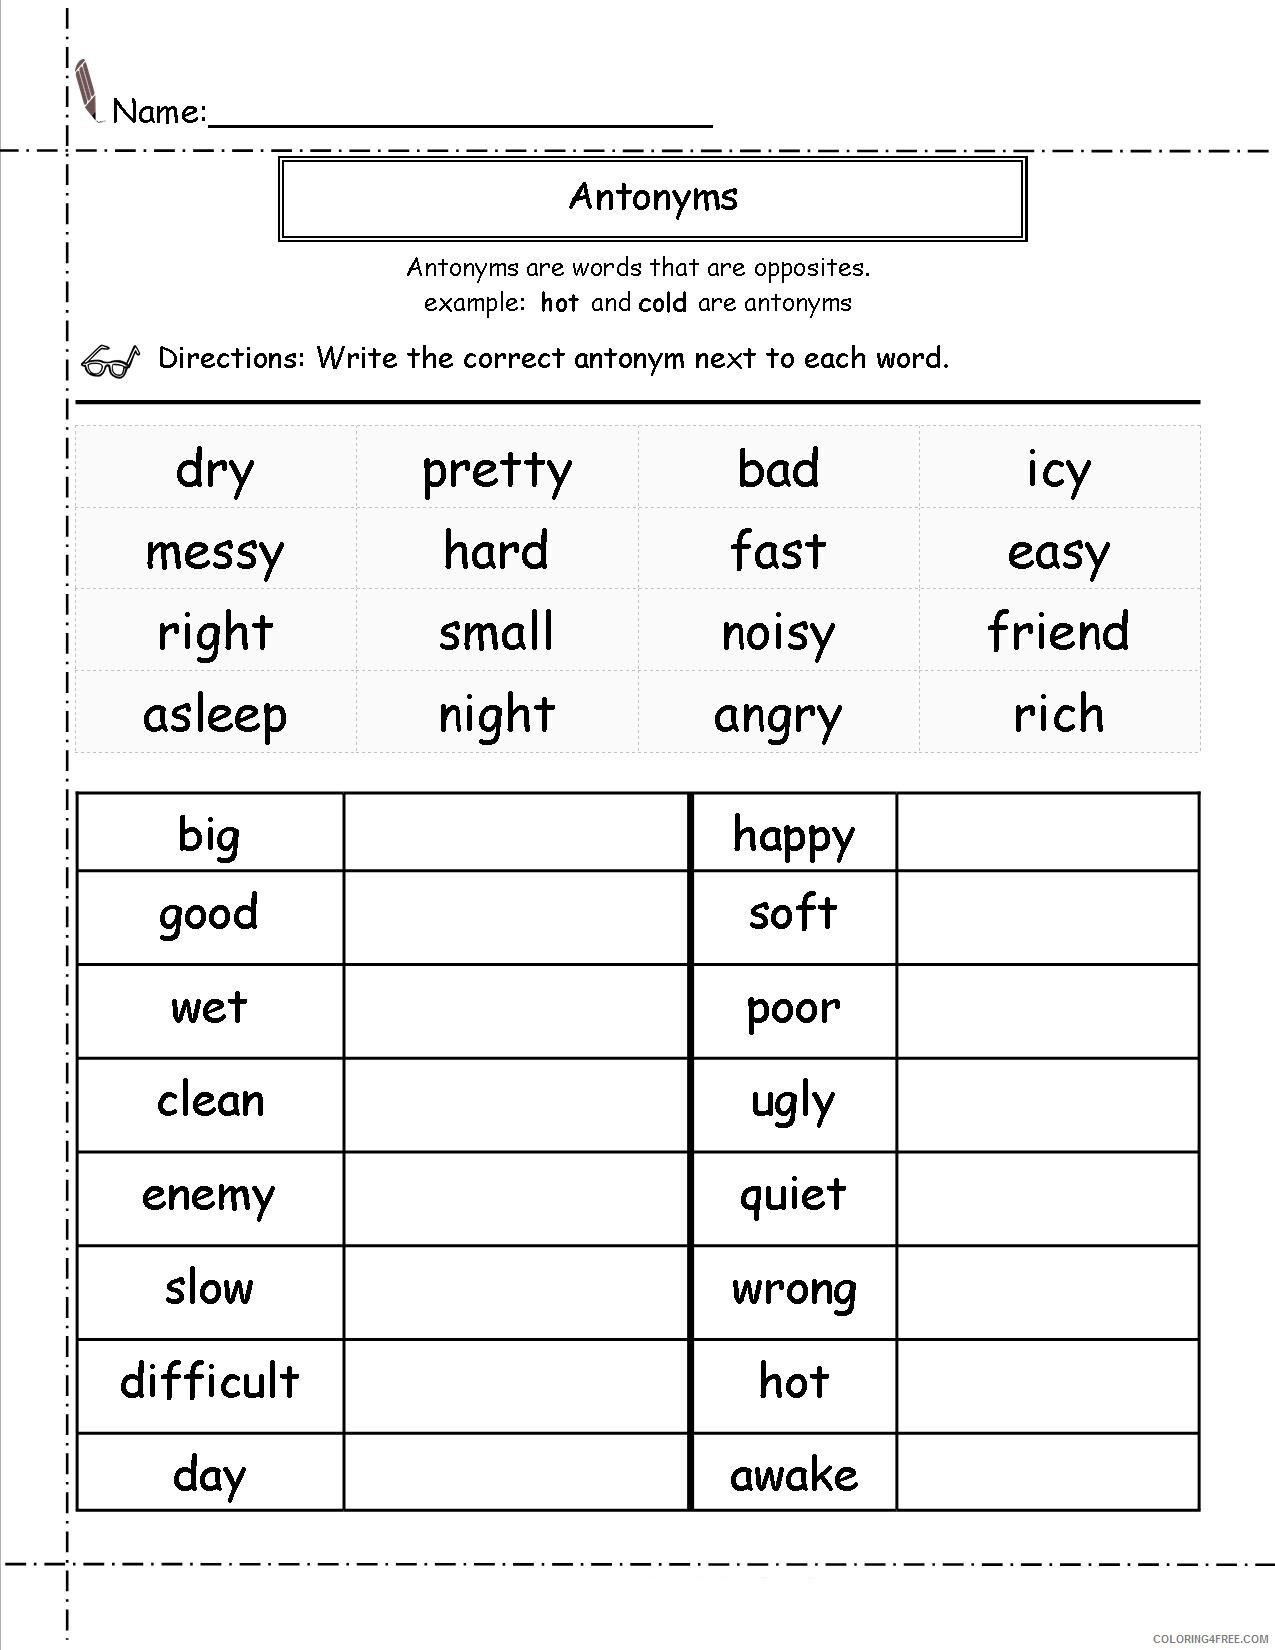 hight resolution of 2nd Grade Coloring Pages Educational English Worksheets Antonyms 2020 0119  Coloring4free - Coloring4Free.com